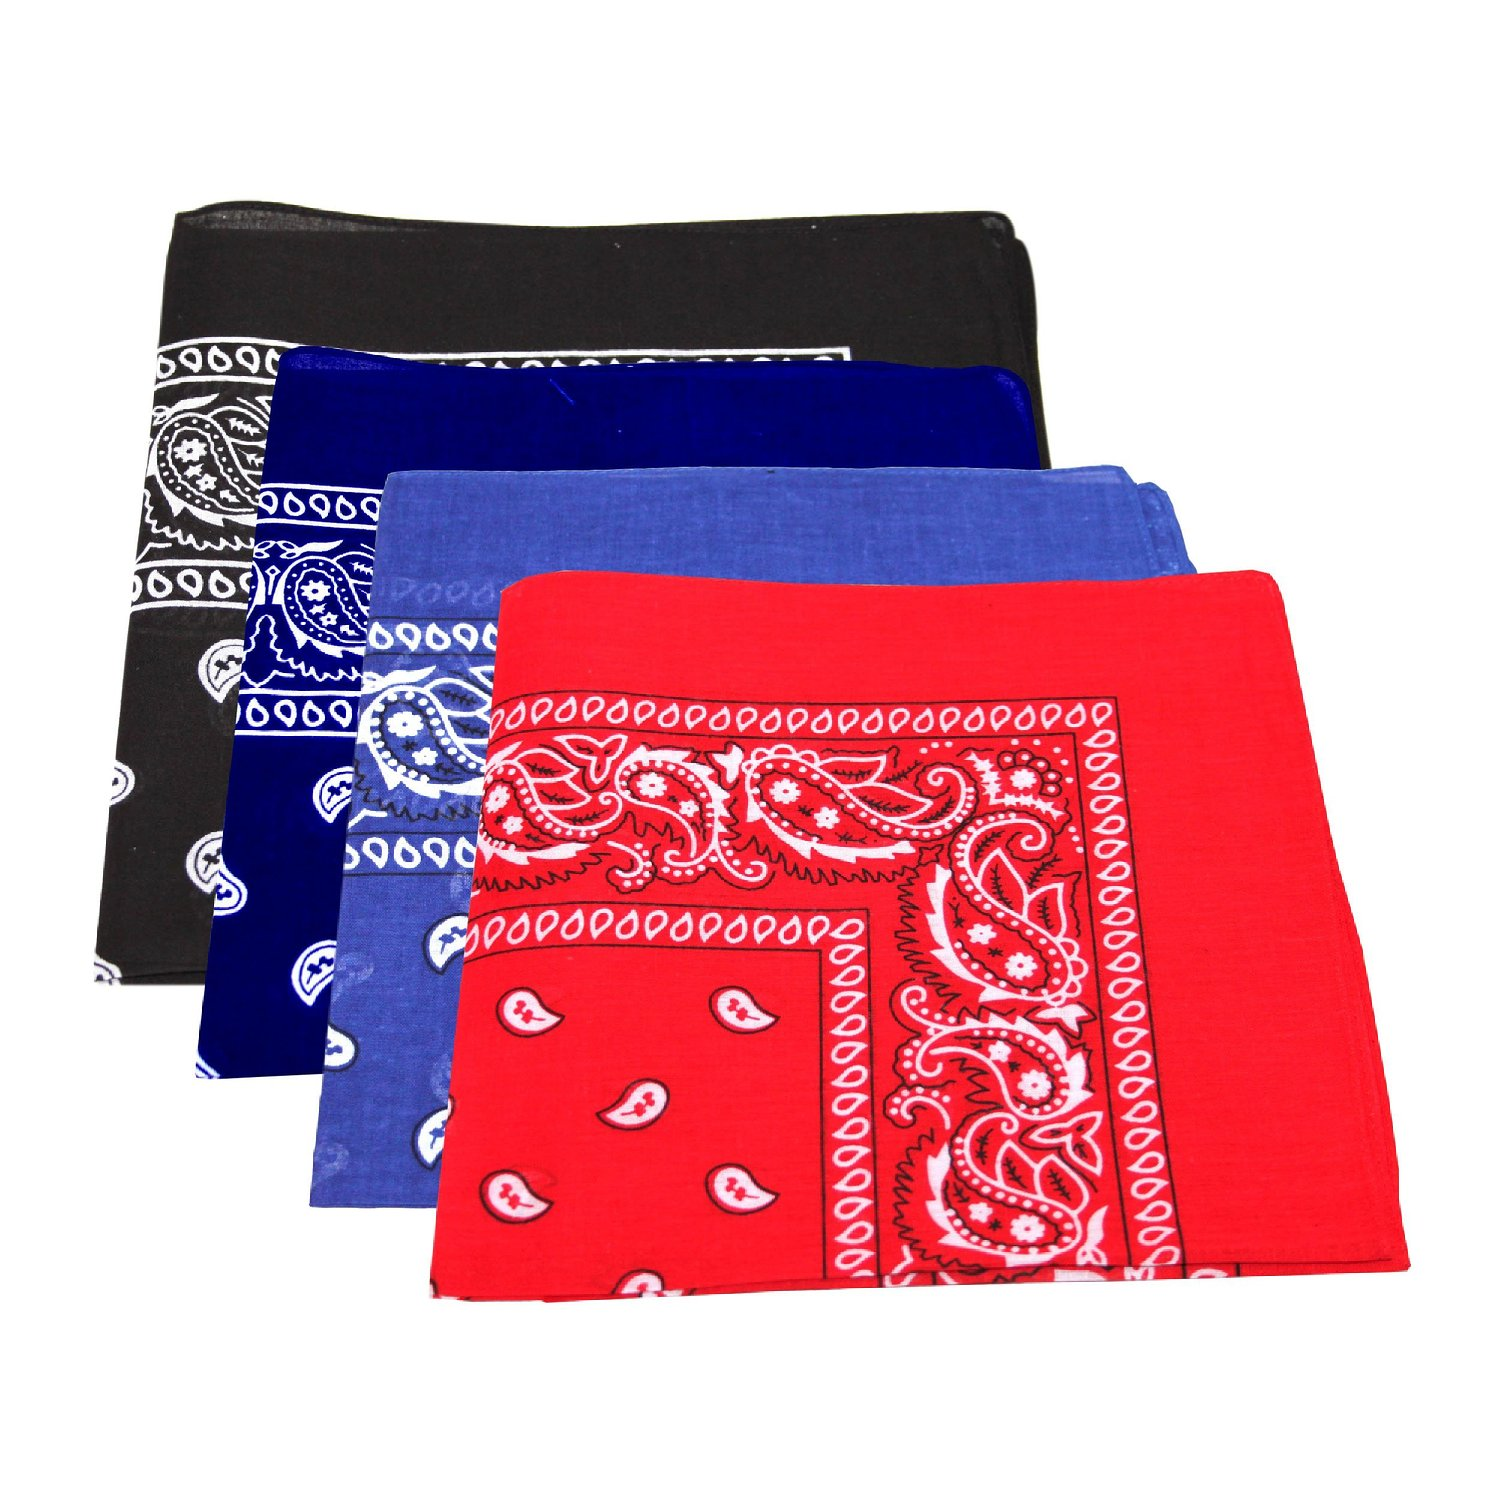 "Paisley Bandanas Navy, Black, Blue & Red 22"" x 22"" COTTON 12 PK"